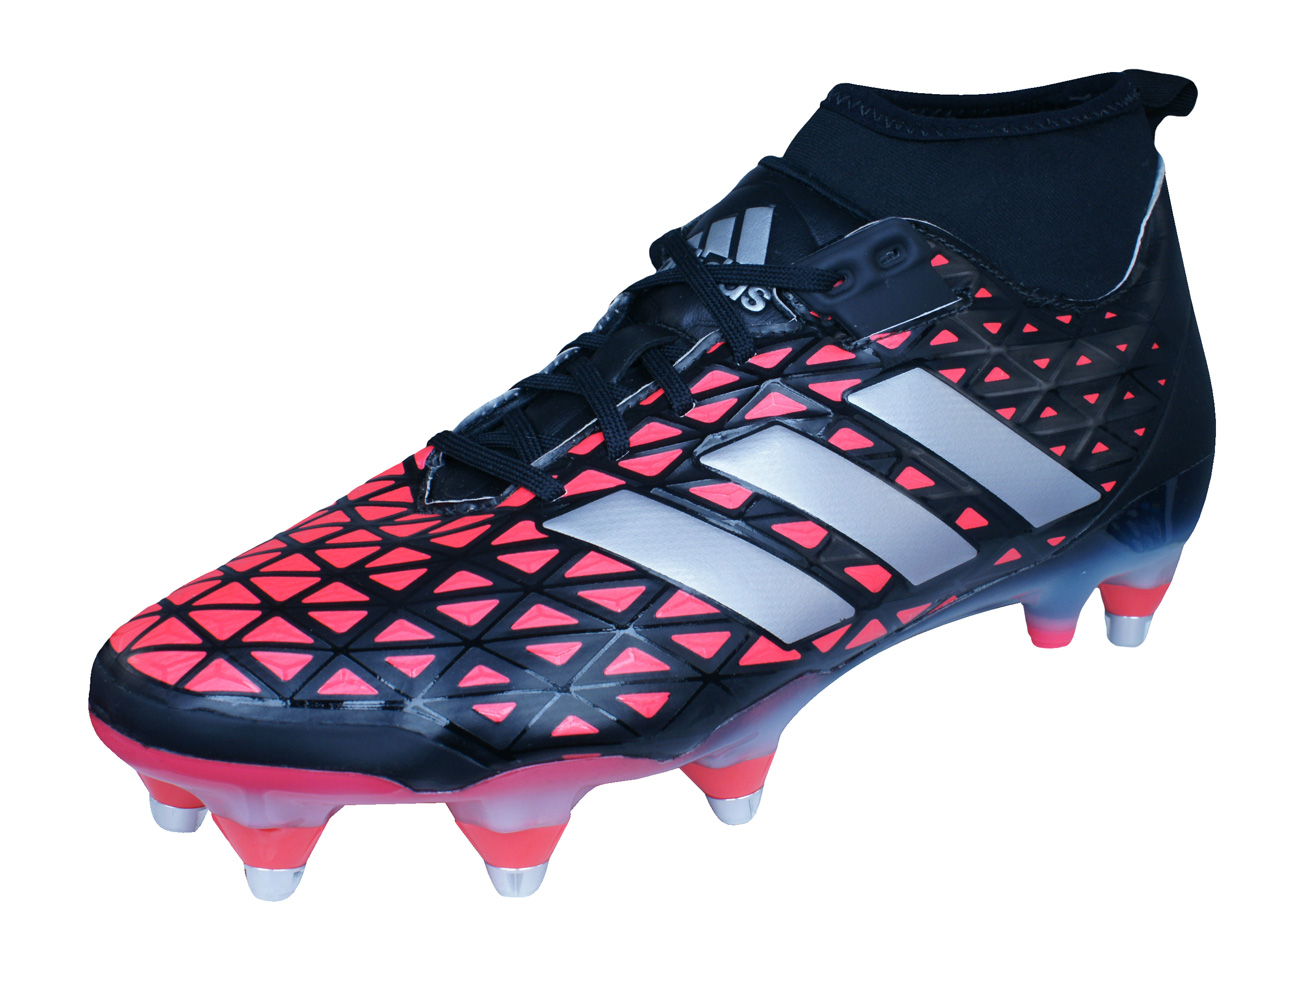 Adidas Kakari Force Sg Mens Rugby Boots Black And Red At